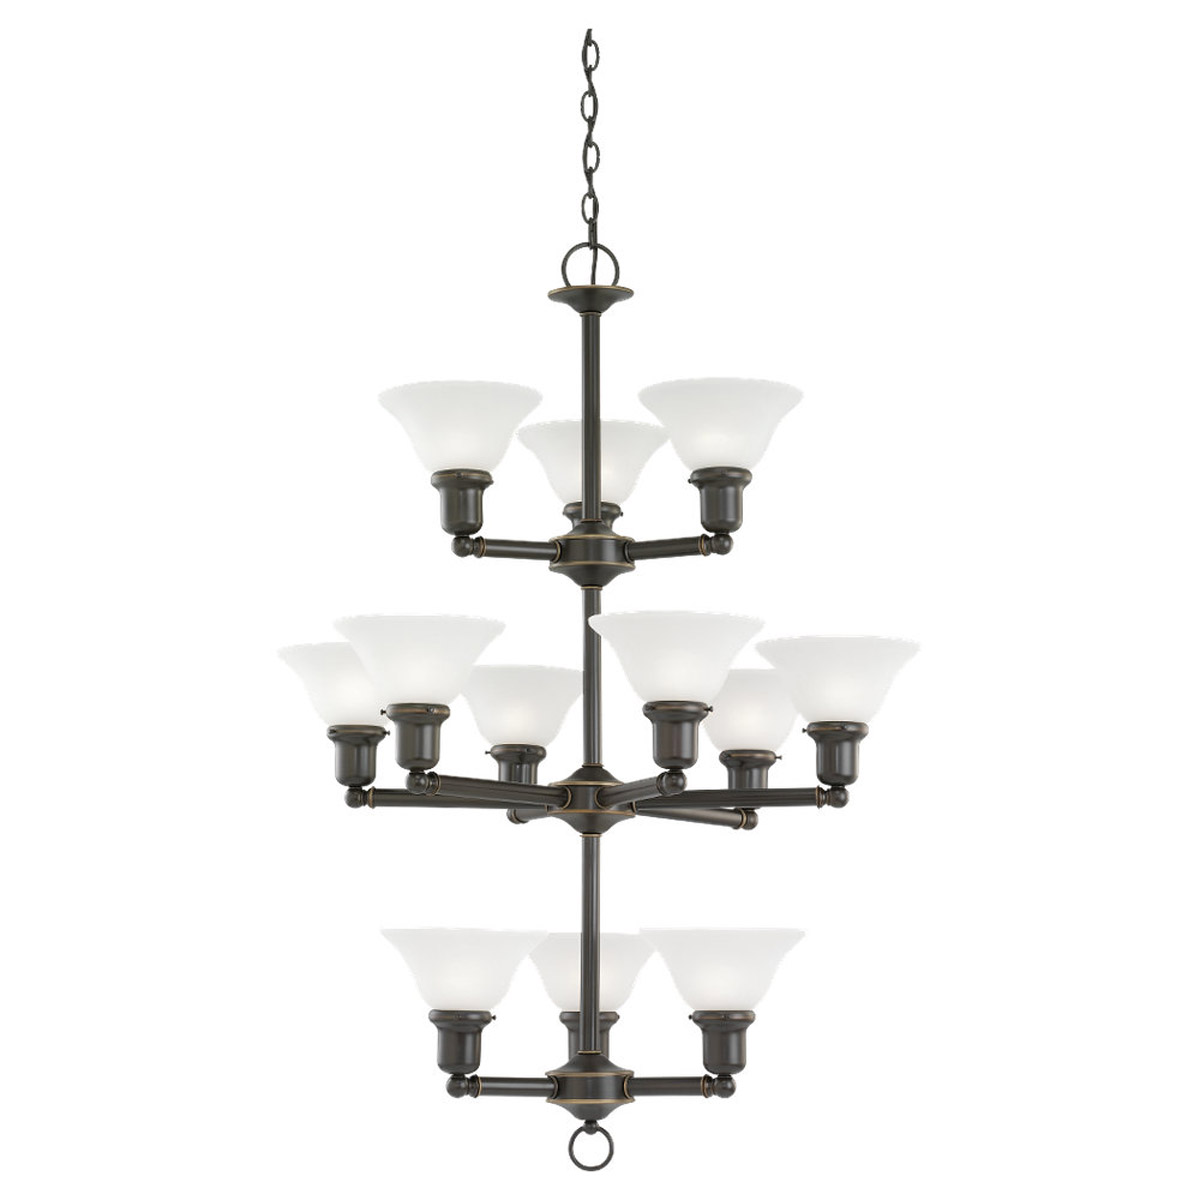 Sea Gull Lighting Sussex 12 Light Chandelier in Heirloom Bronze 39064BLE-782 photo